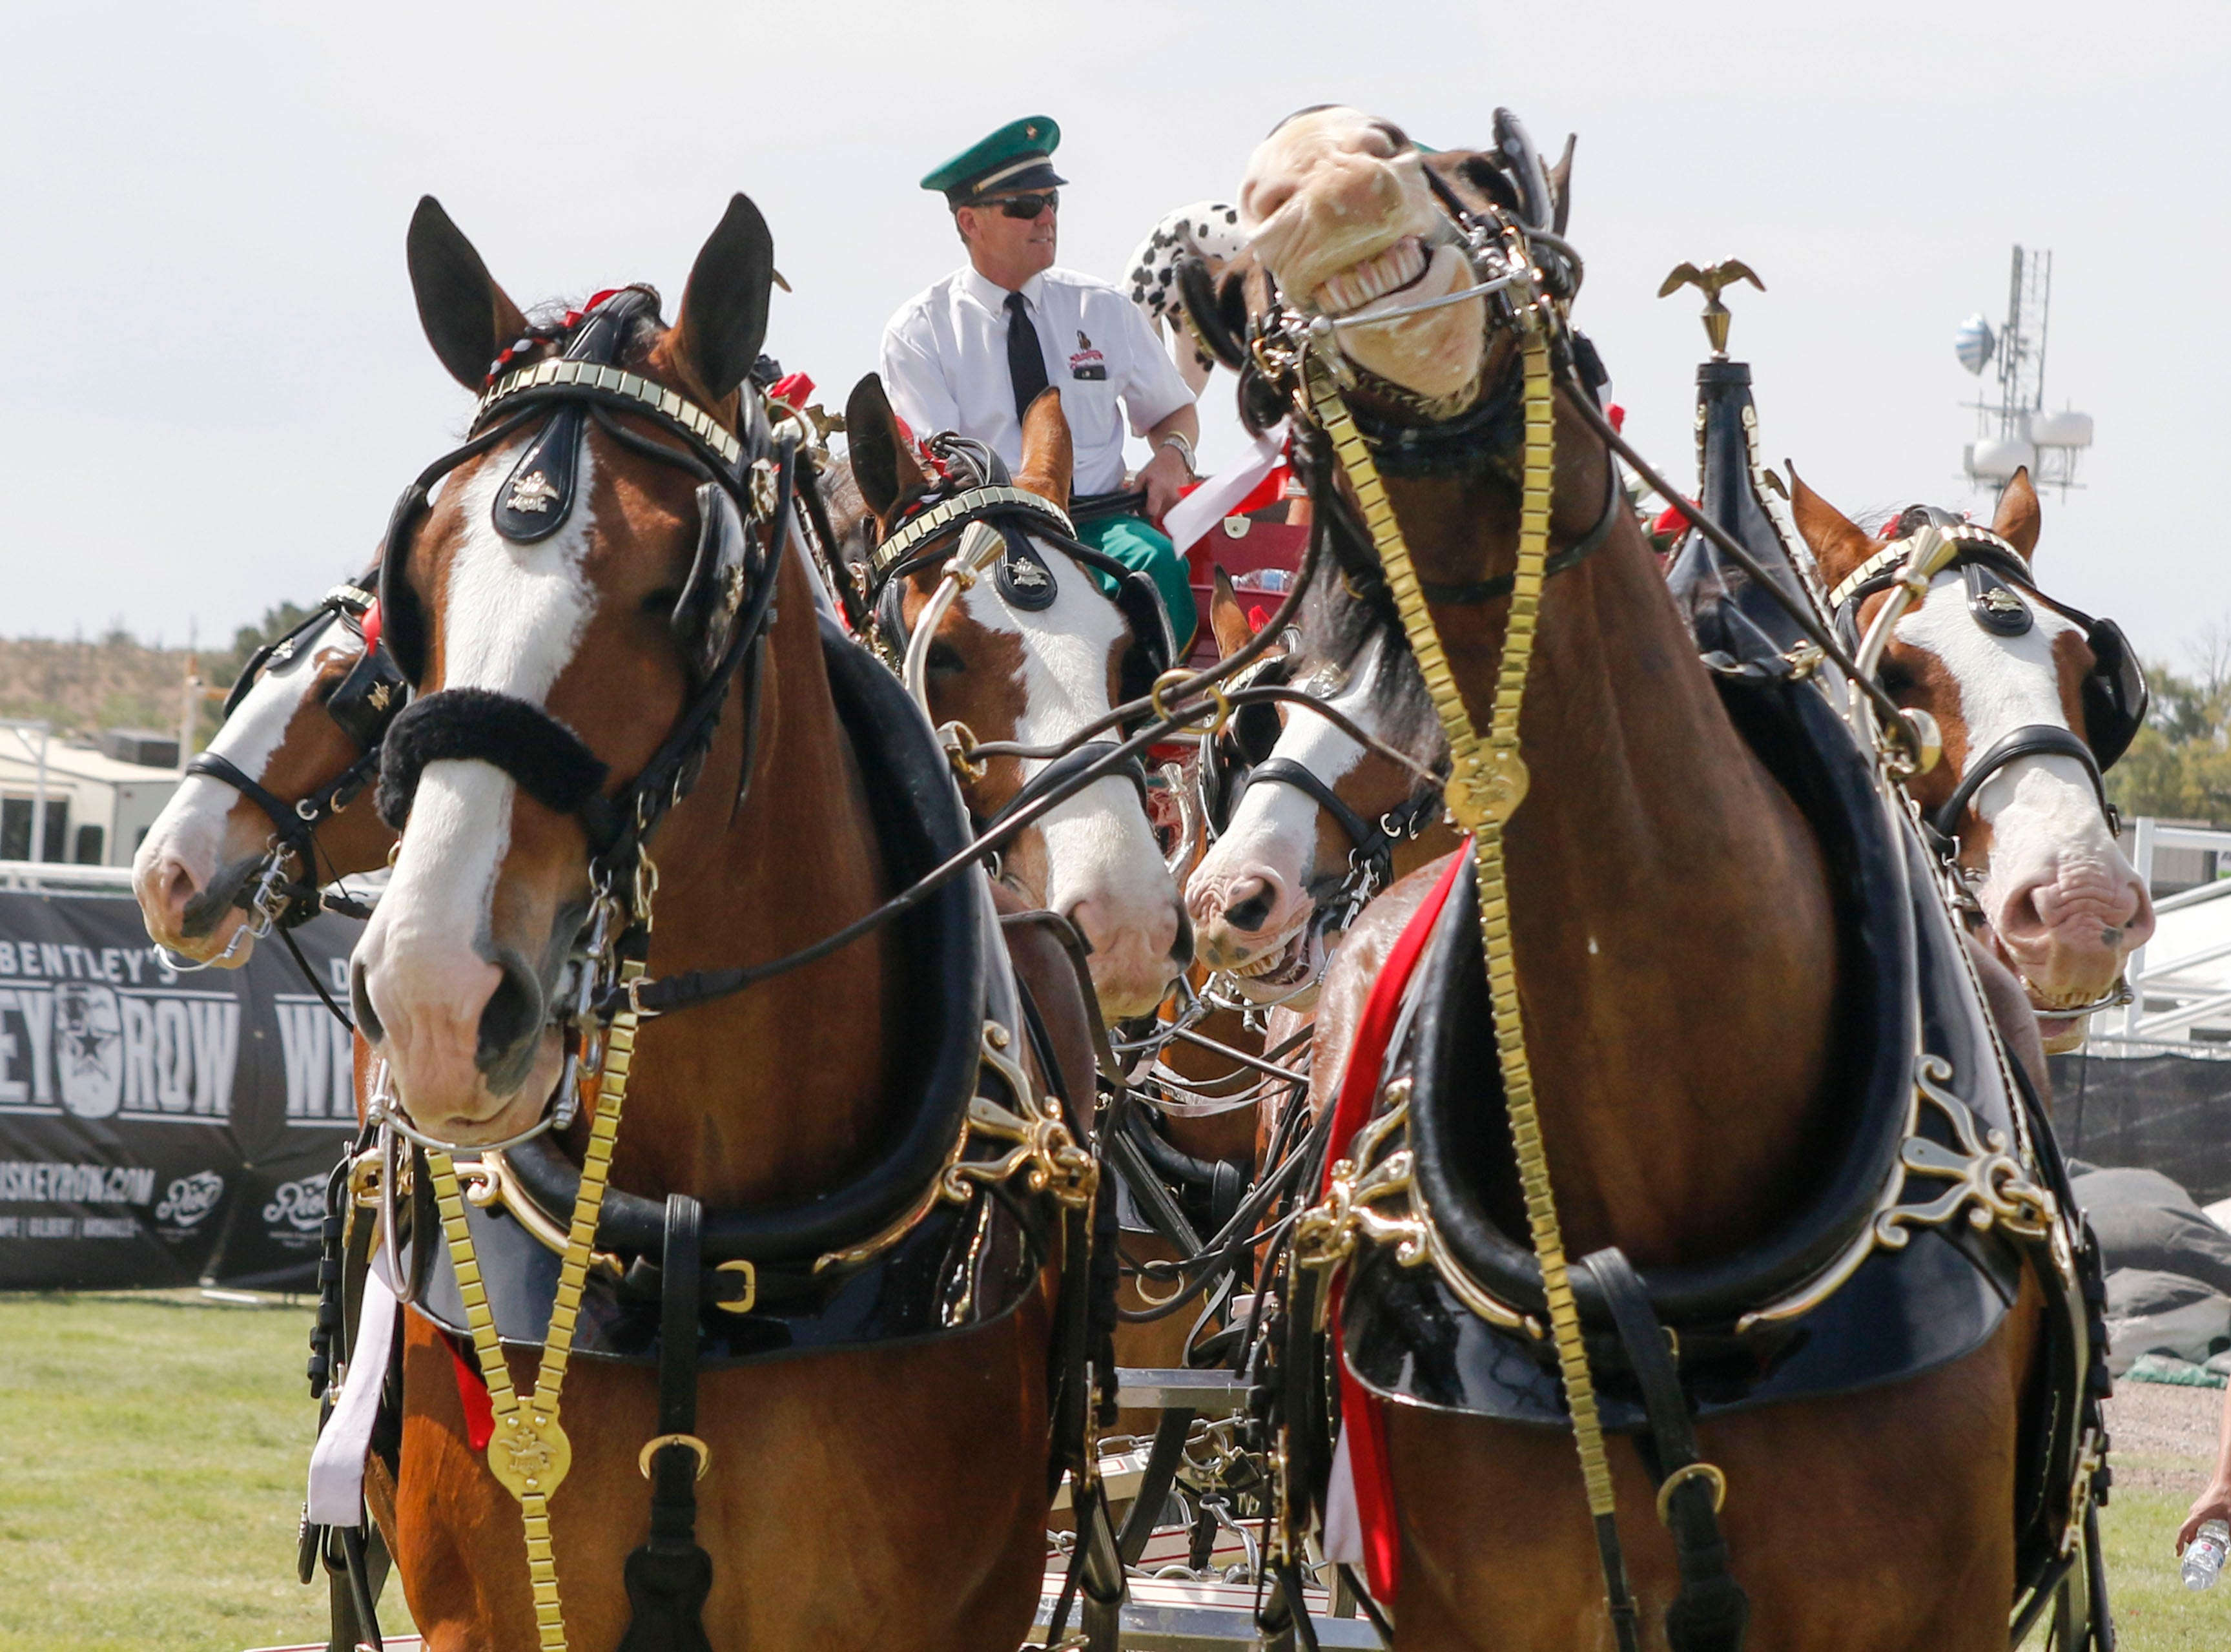 A Budweiser Clydesdale appears to be smiling as others take their job a little more seriously as they make an appearance during Country Thunder Arizona on April 11, 2019, in Florence.